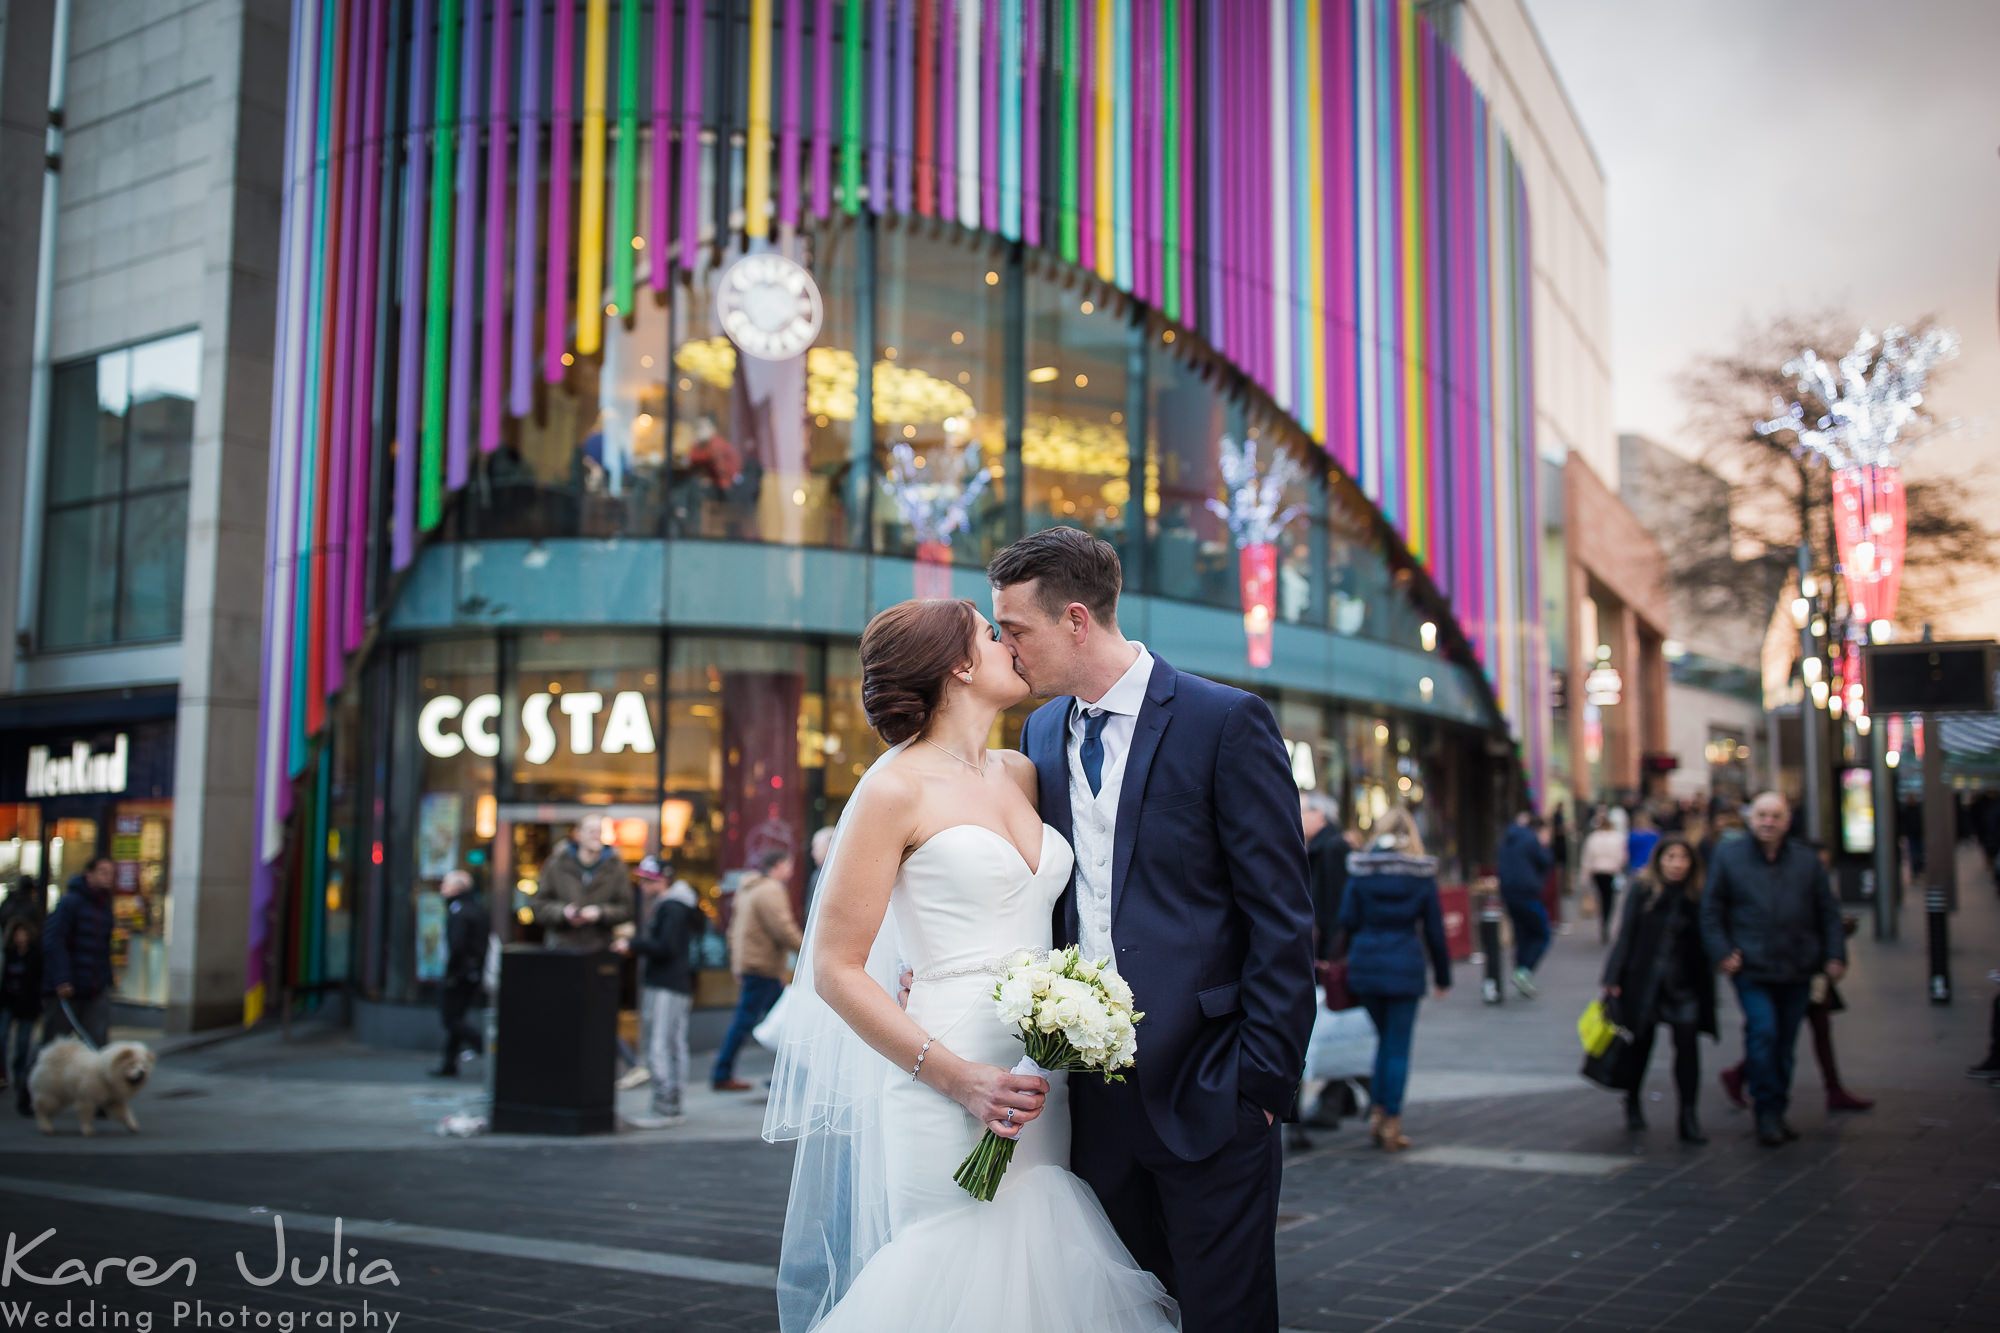 bride and groom portrait on wedding day in Liverpool city centre